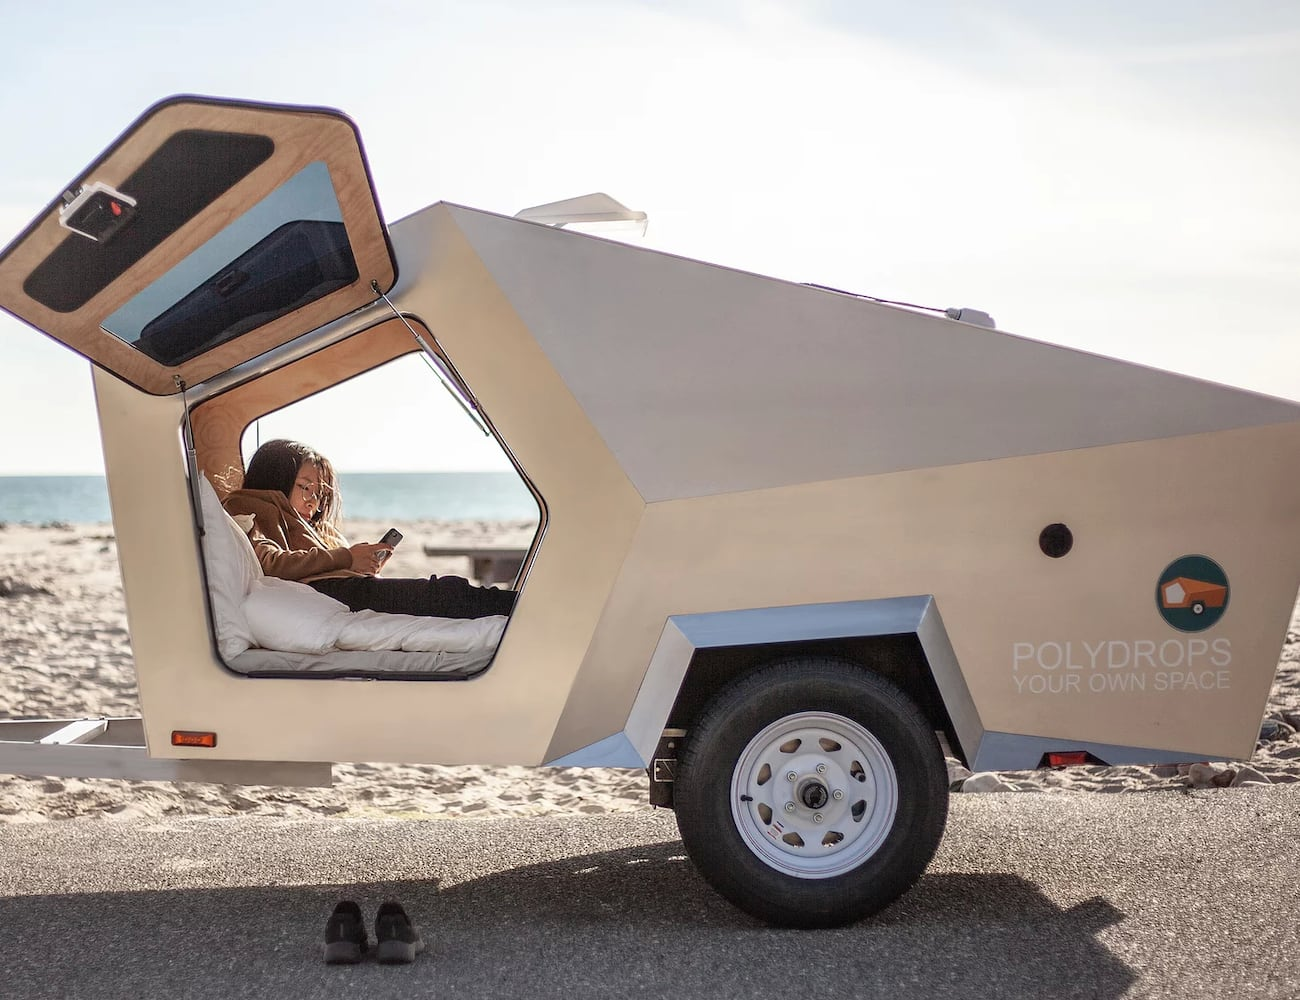 Polydrops Trailer Traveling Camper is your own space for trips